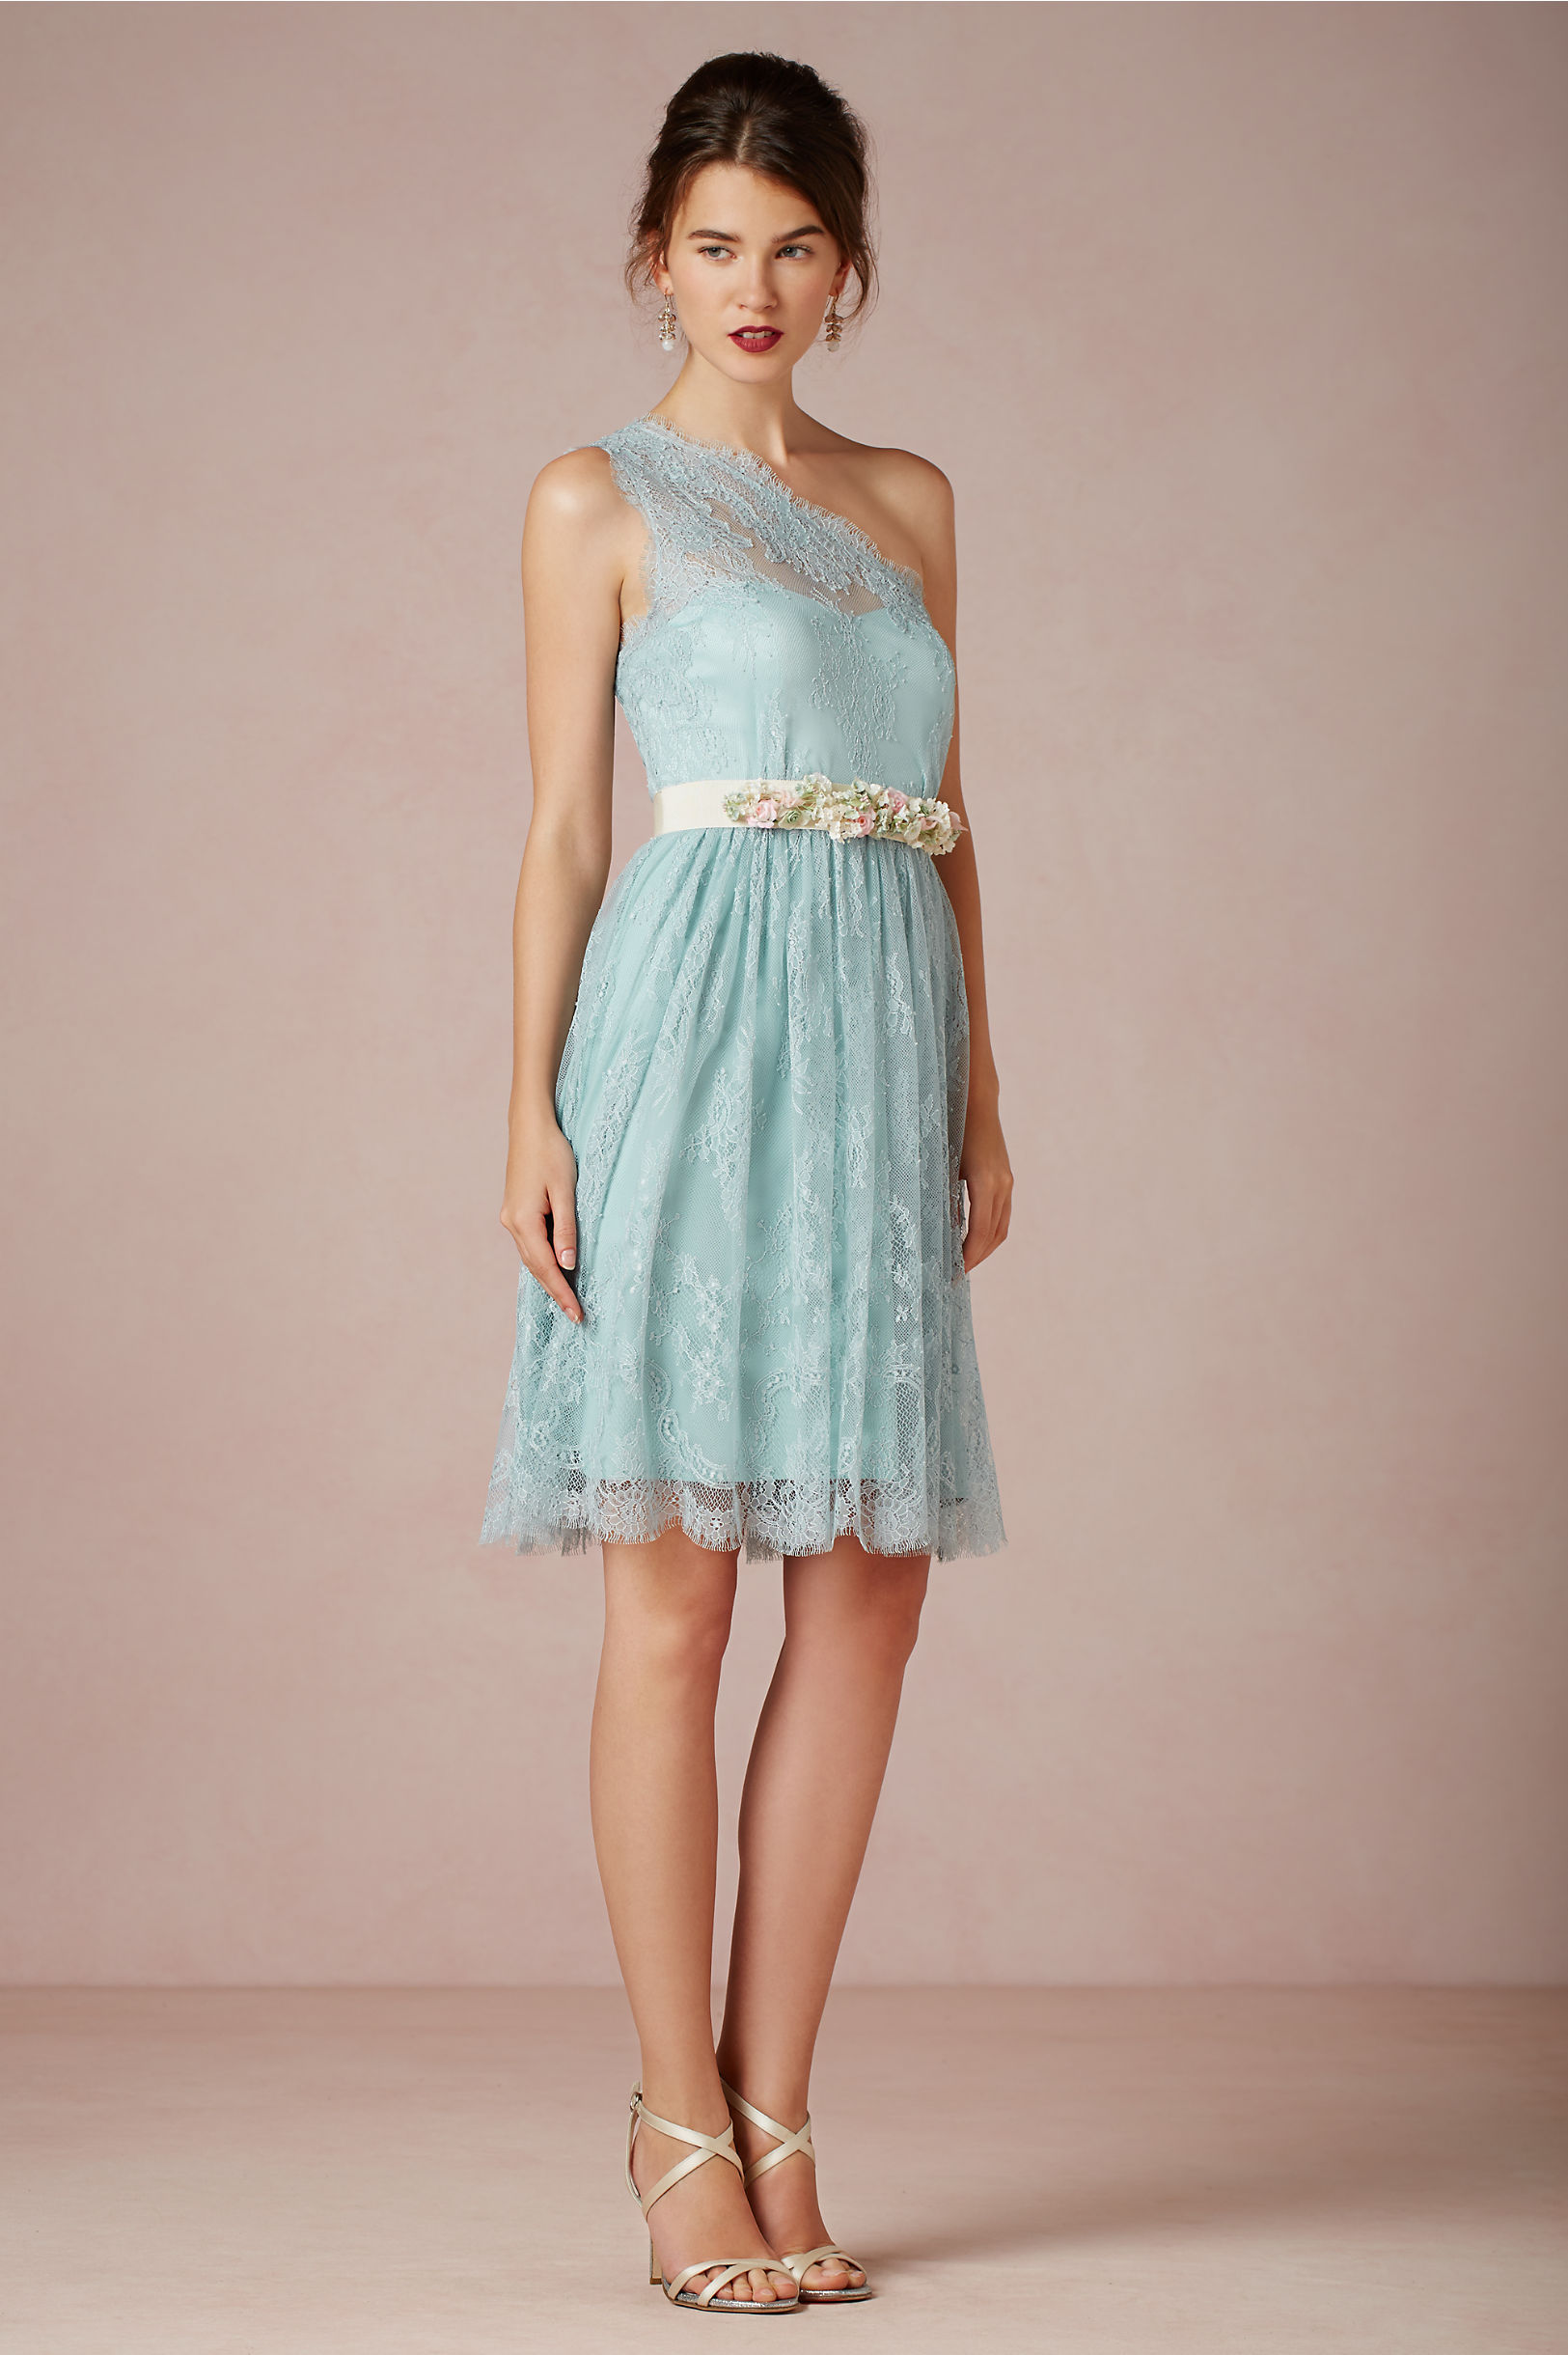 Ariel Dress in Bridal Party | BHLDN